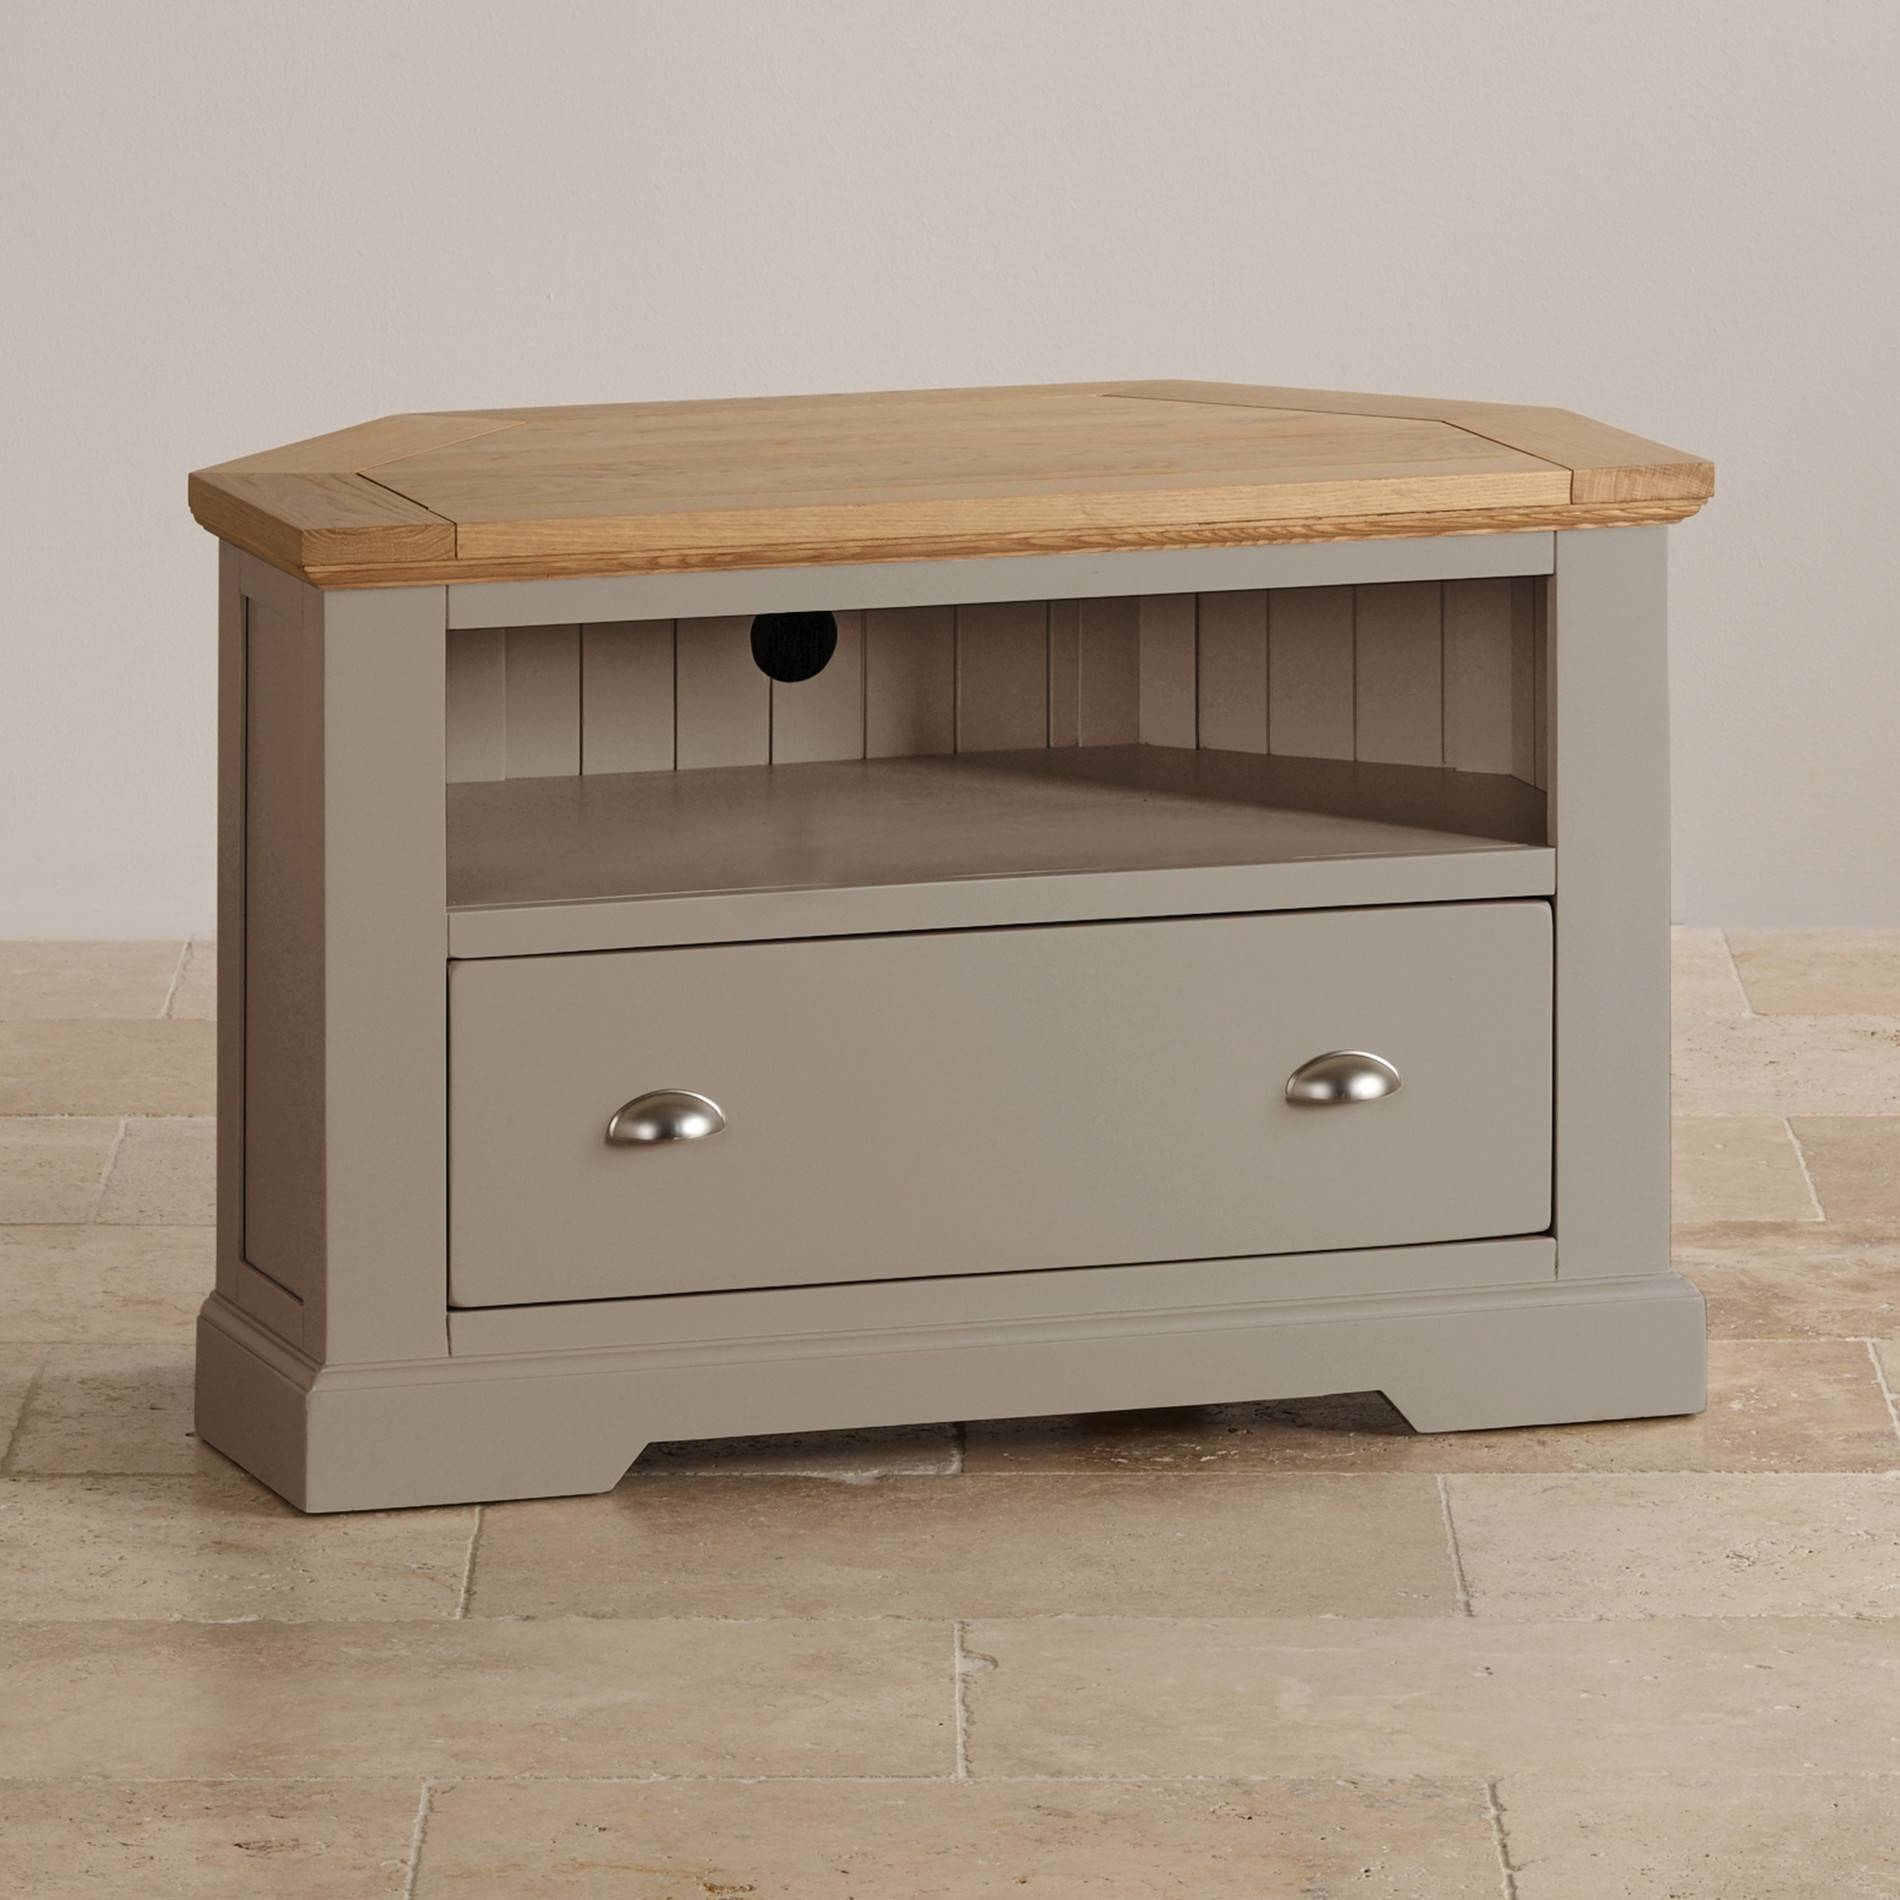 St Ives Corner Tv Unit In Grey Painted Acacia With Oak Top throughout Corner Oak Tv Stands (Image 12 of 15)